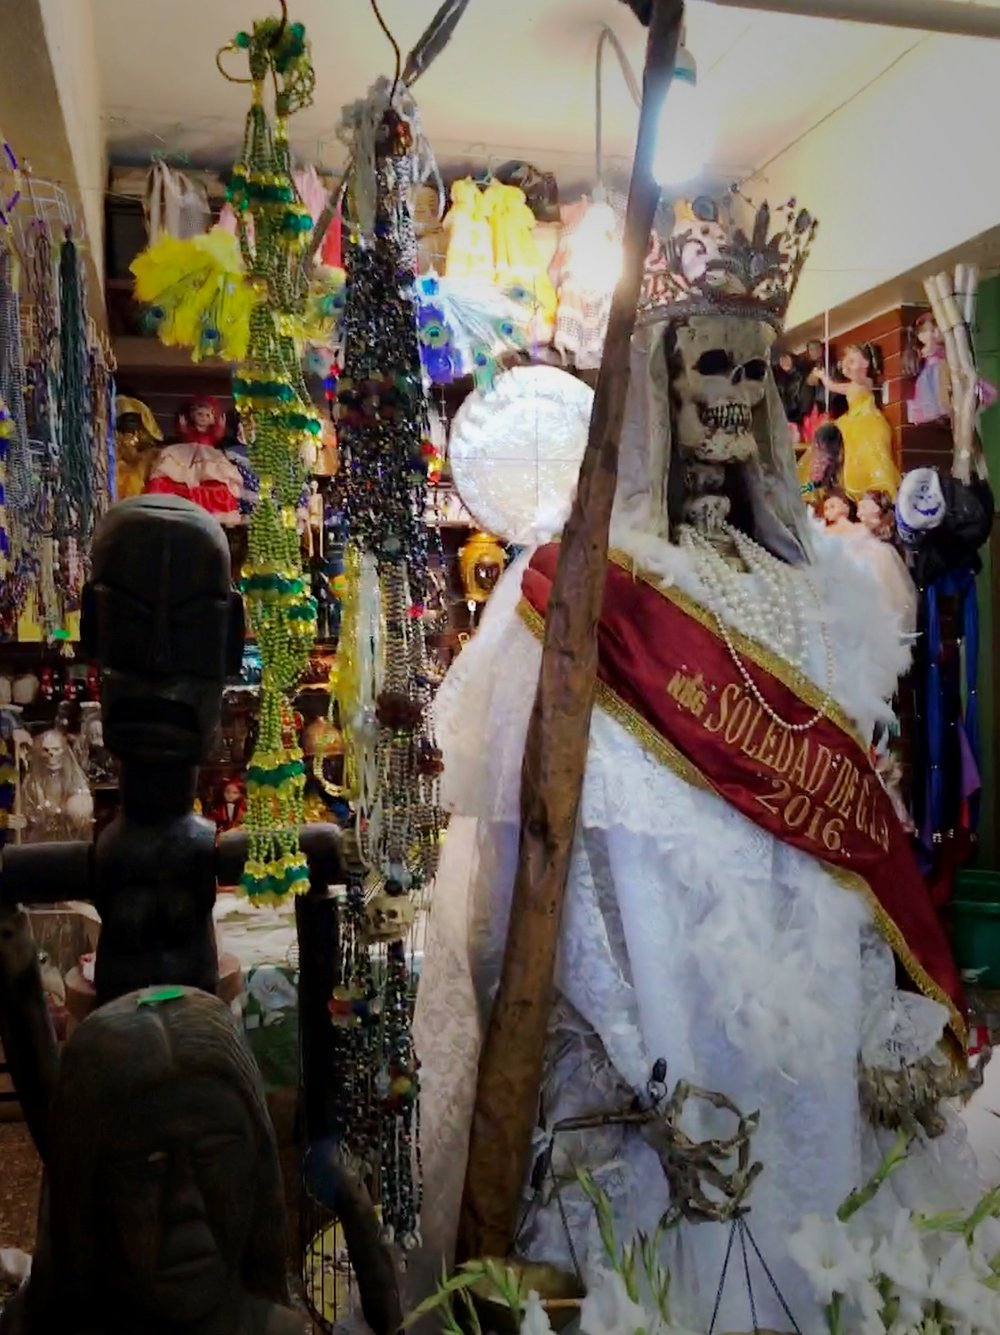 The Catholic church isn't fond of Santa Muerte and has called her worship blasphemous